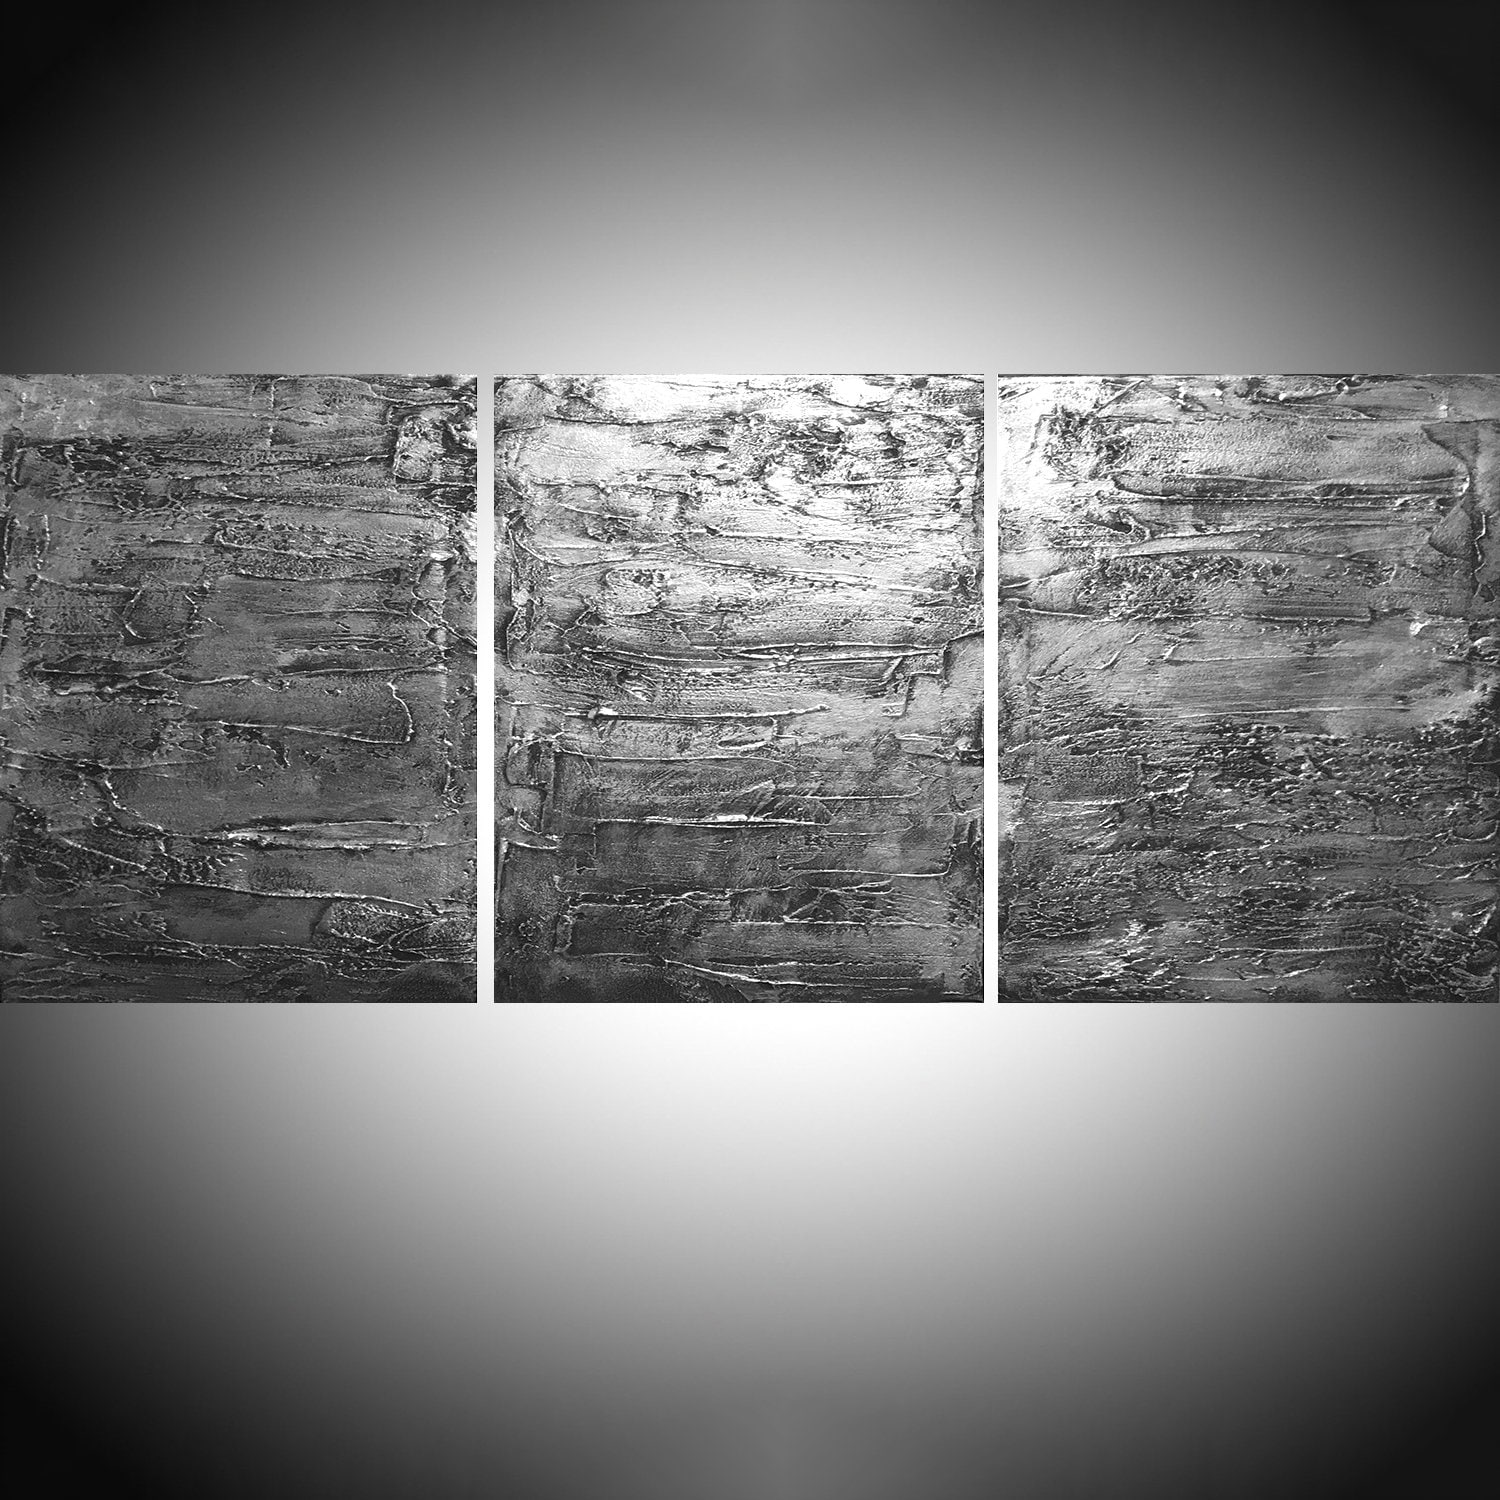 Extra LARGE WALL ART triptych 3 panel wall metal art   Etsy